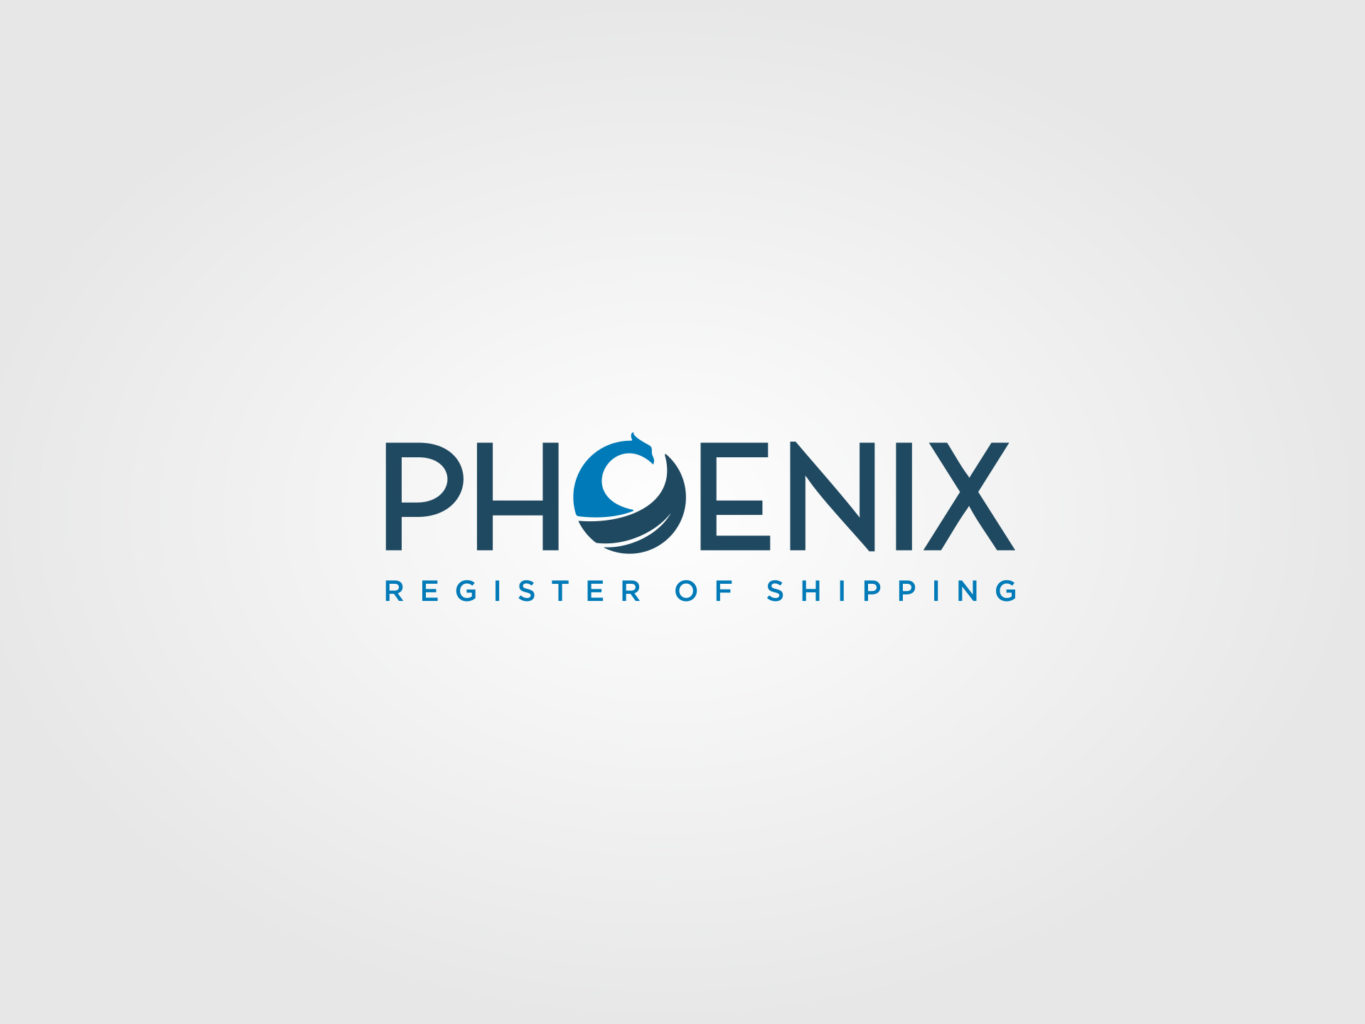 Phoenix - register of shipping logo